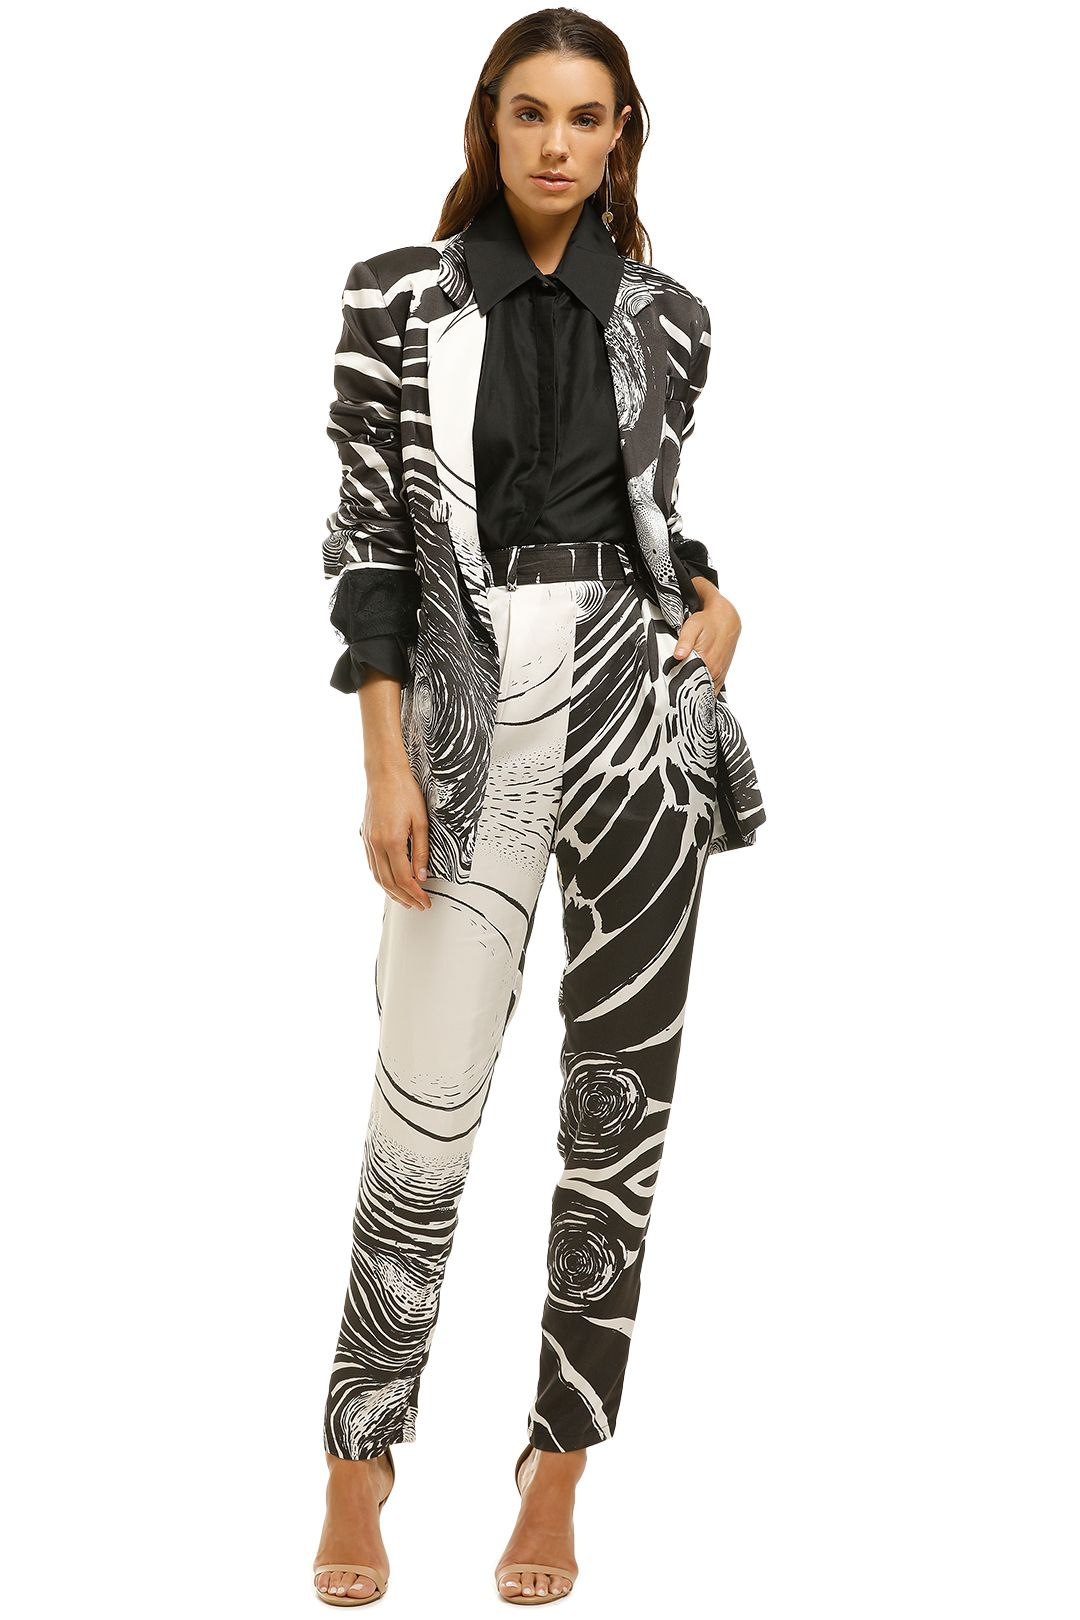 Aje-Downing-Blazer-Starry-Night-Black-White-Front